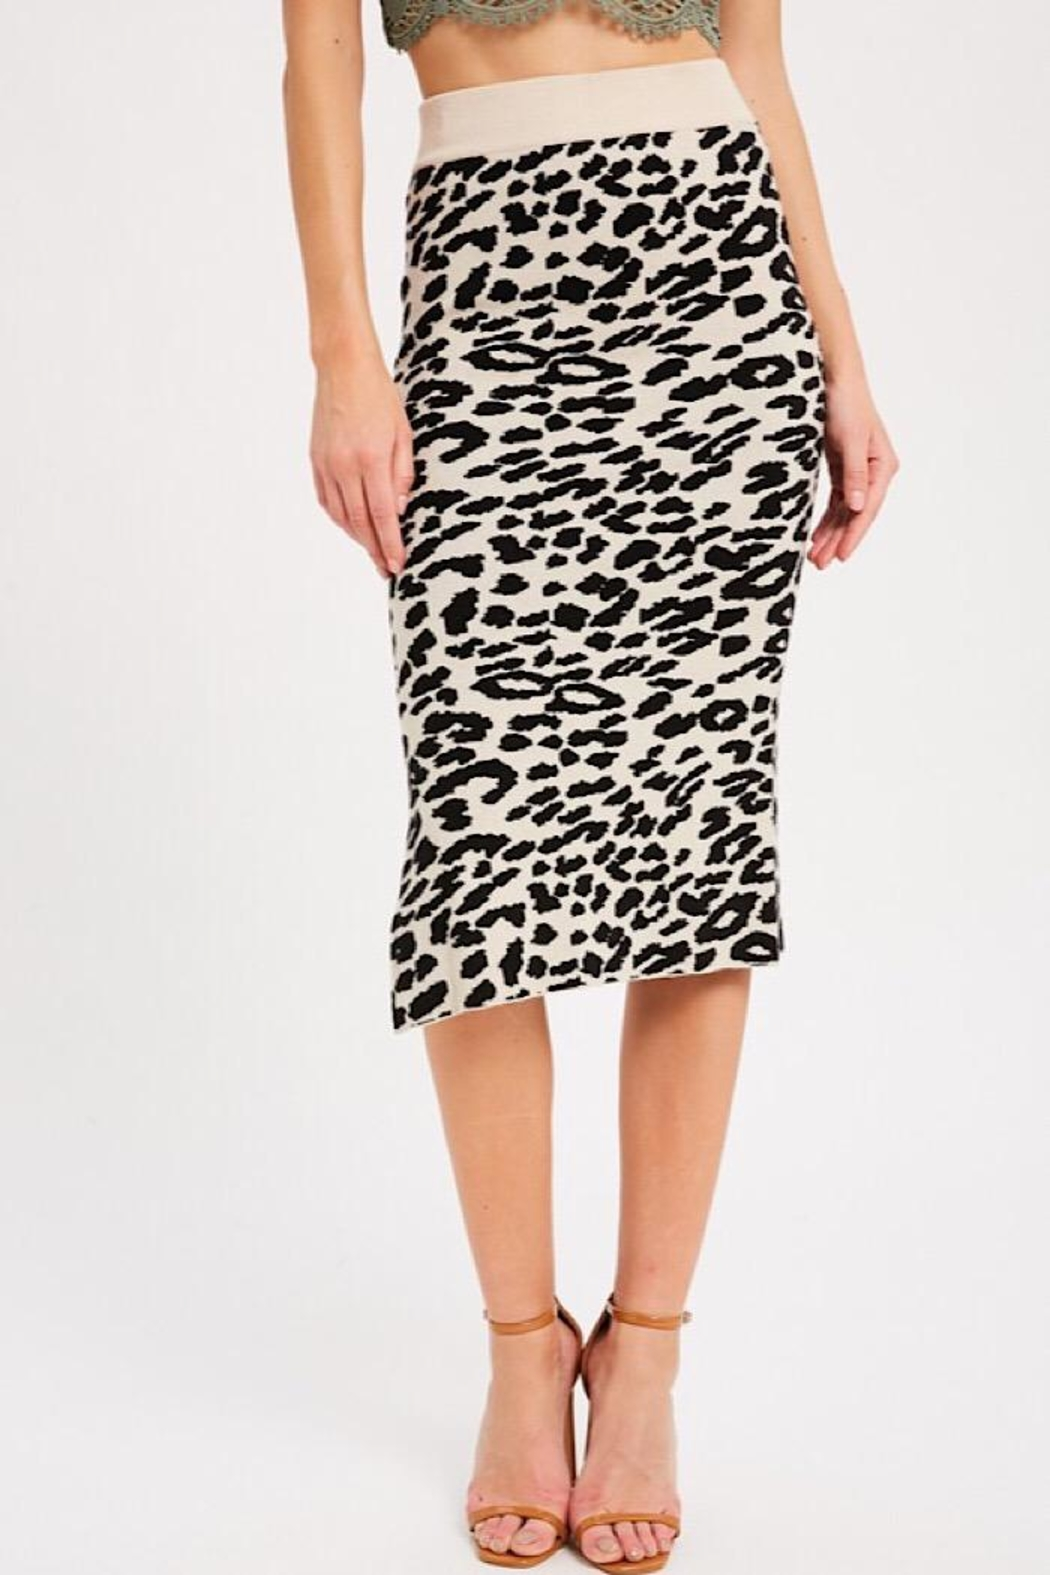 Wishlist Leopard Causal Knit Skirt - Main Image